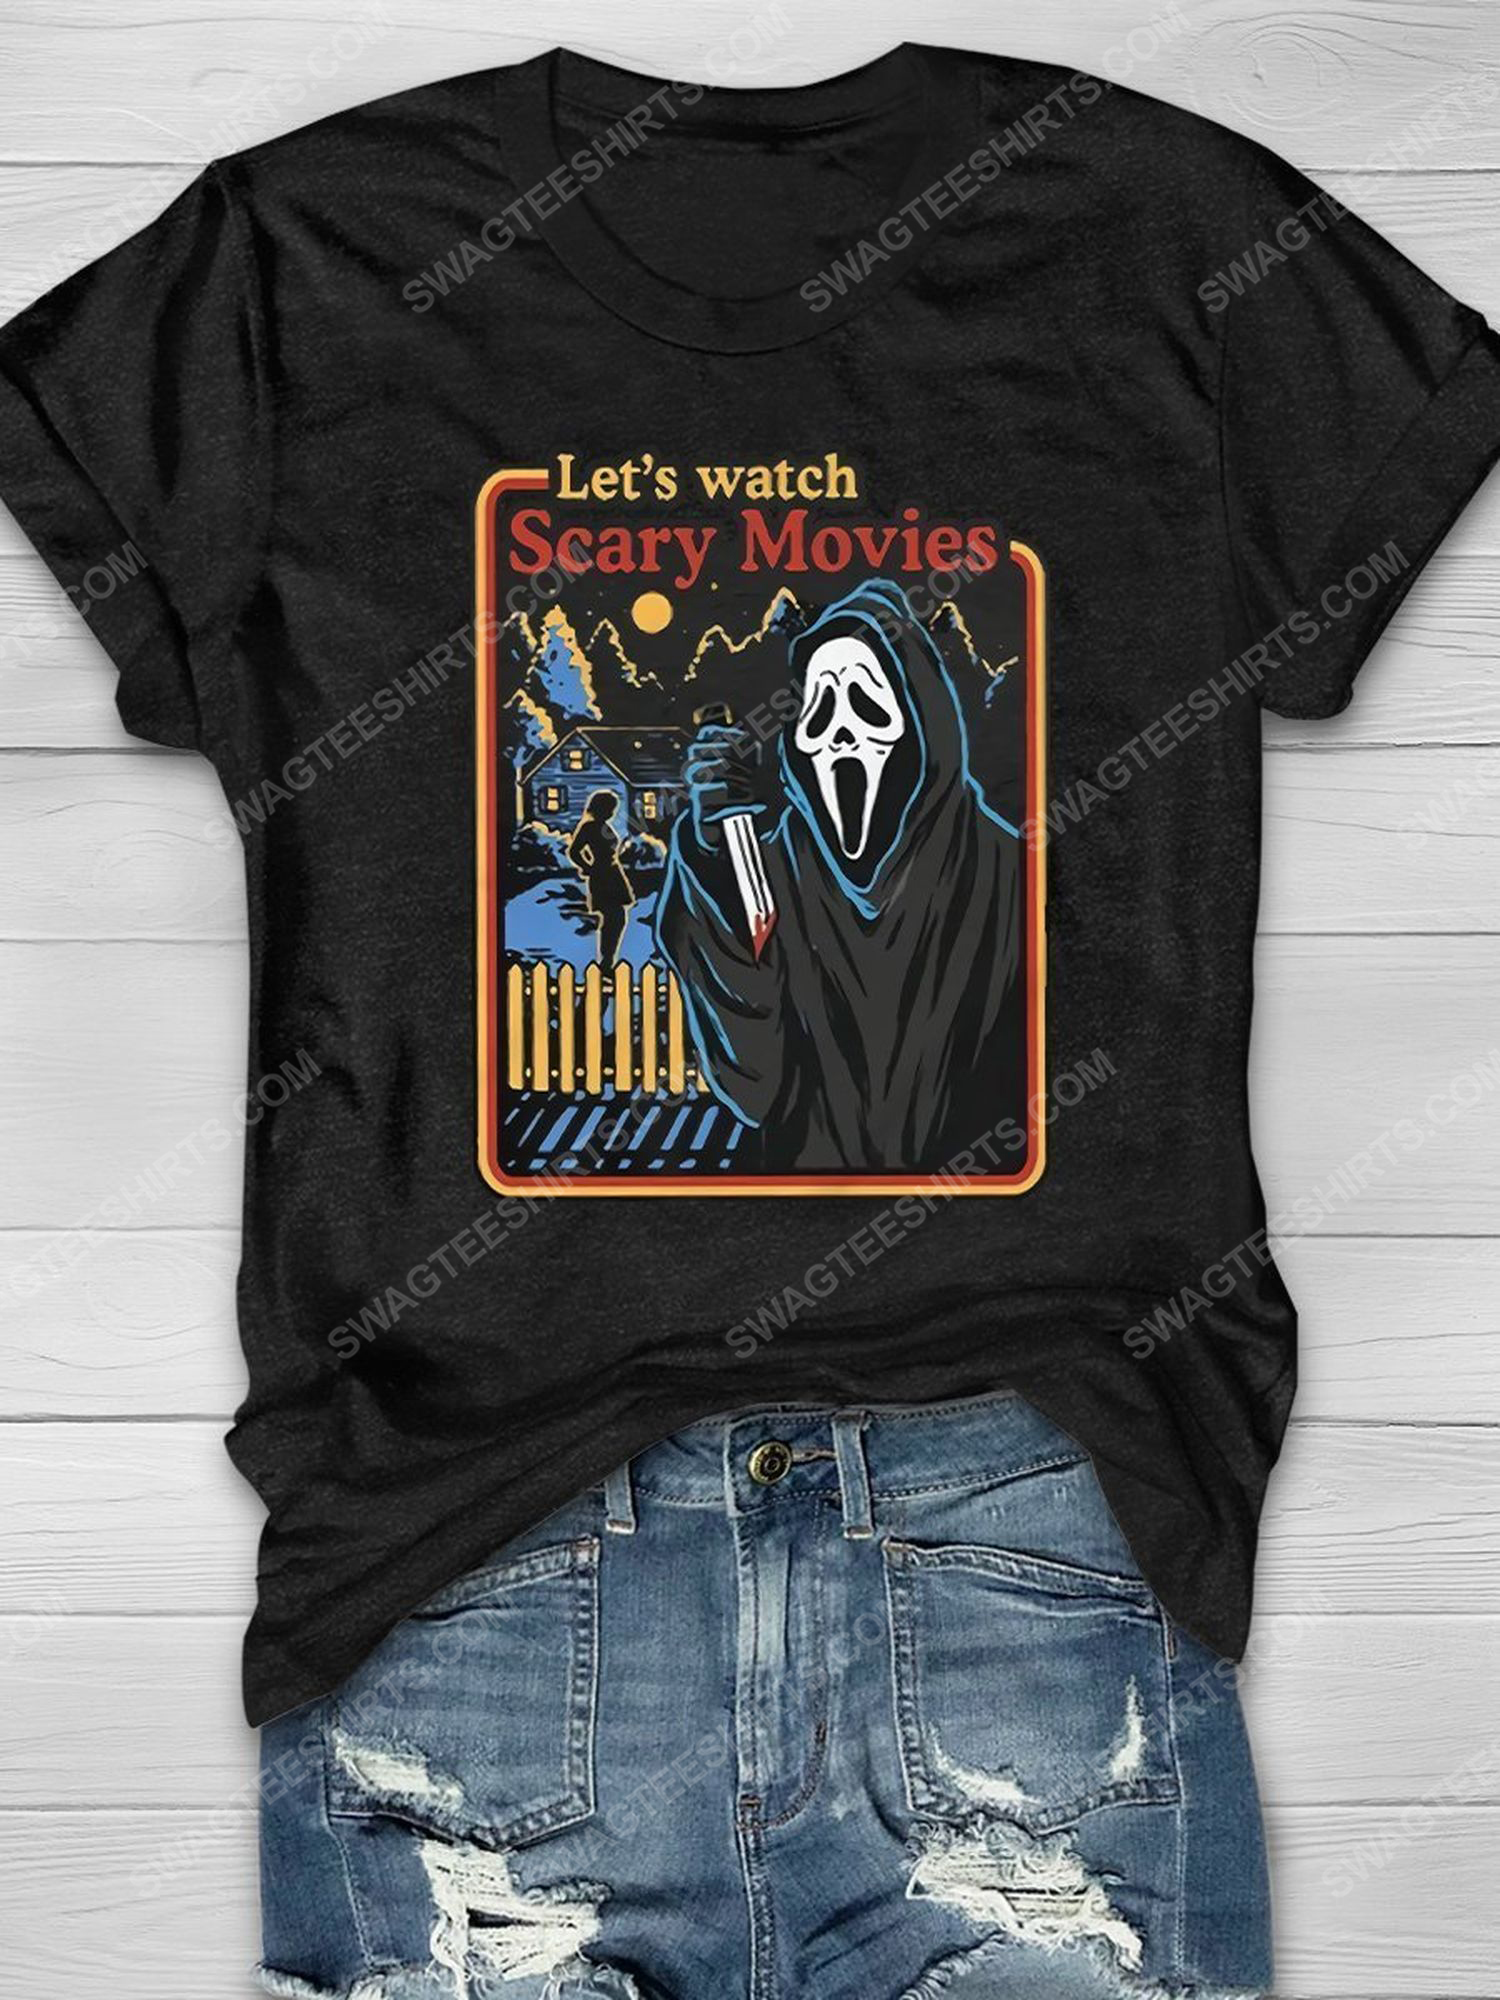 Halloween screaming movie let's watch scary movies shirt 1 - Copy